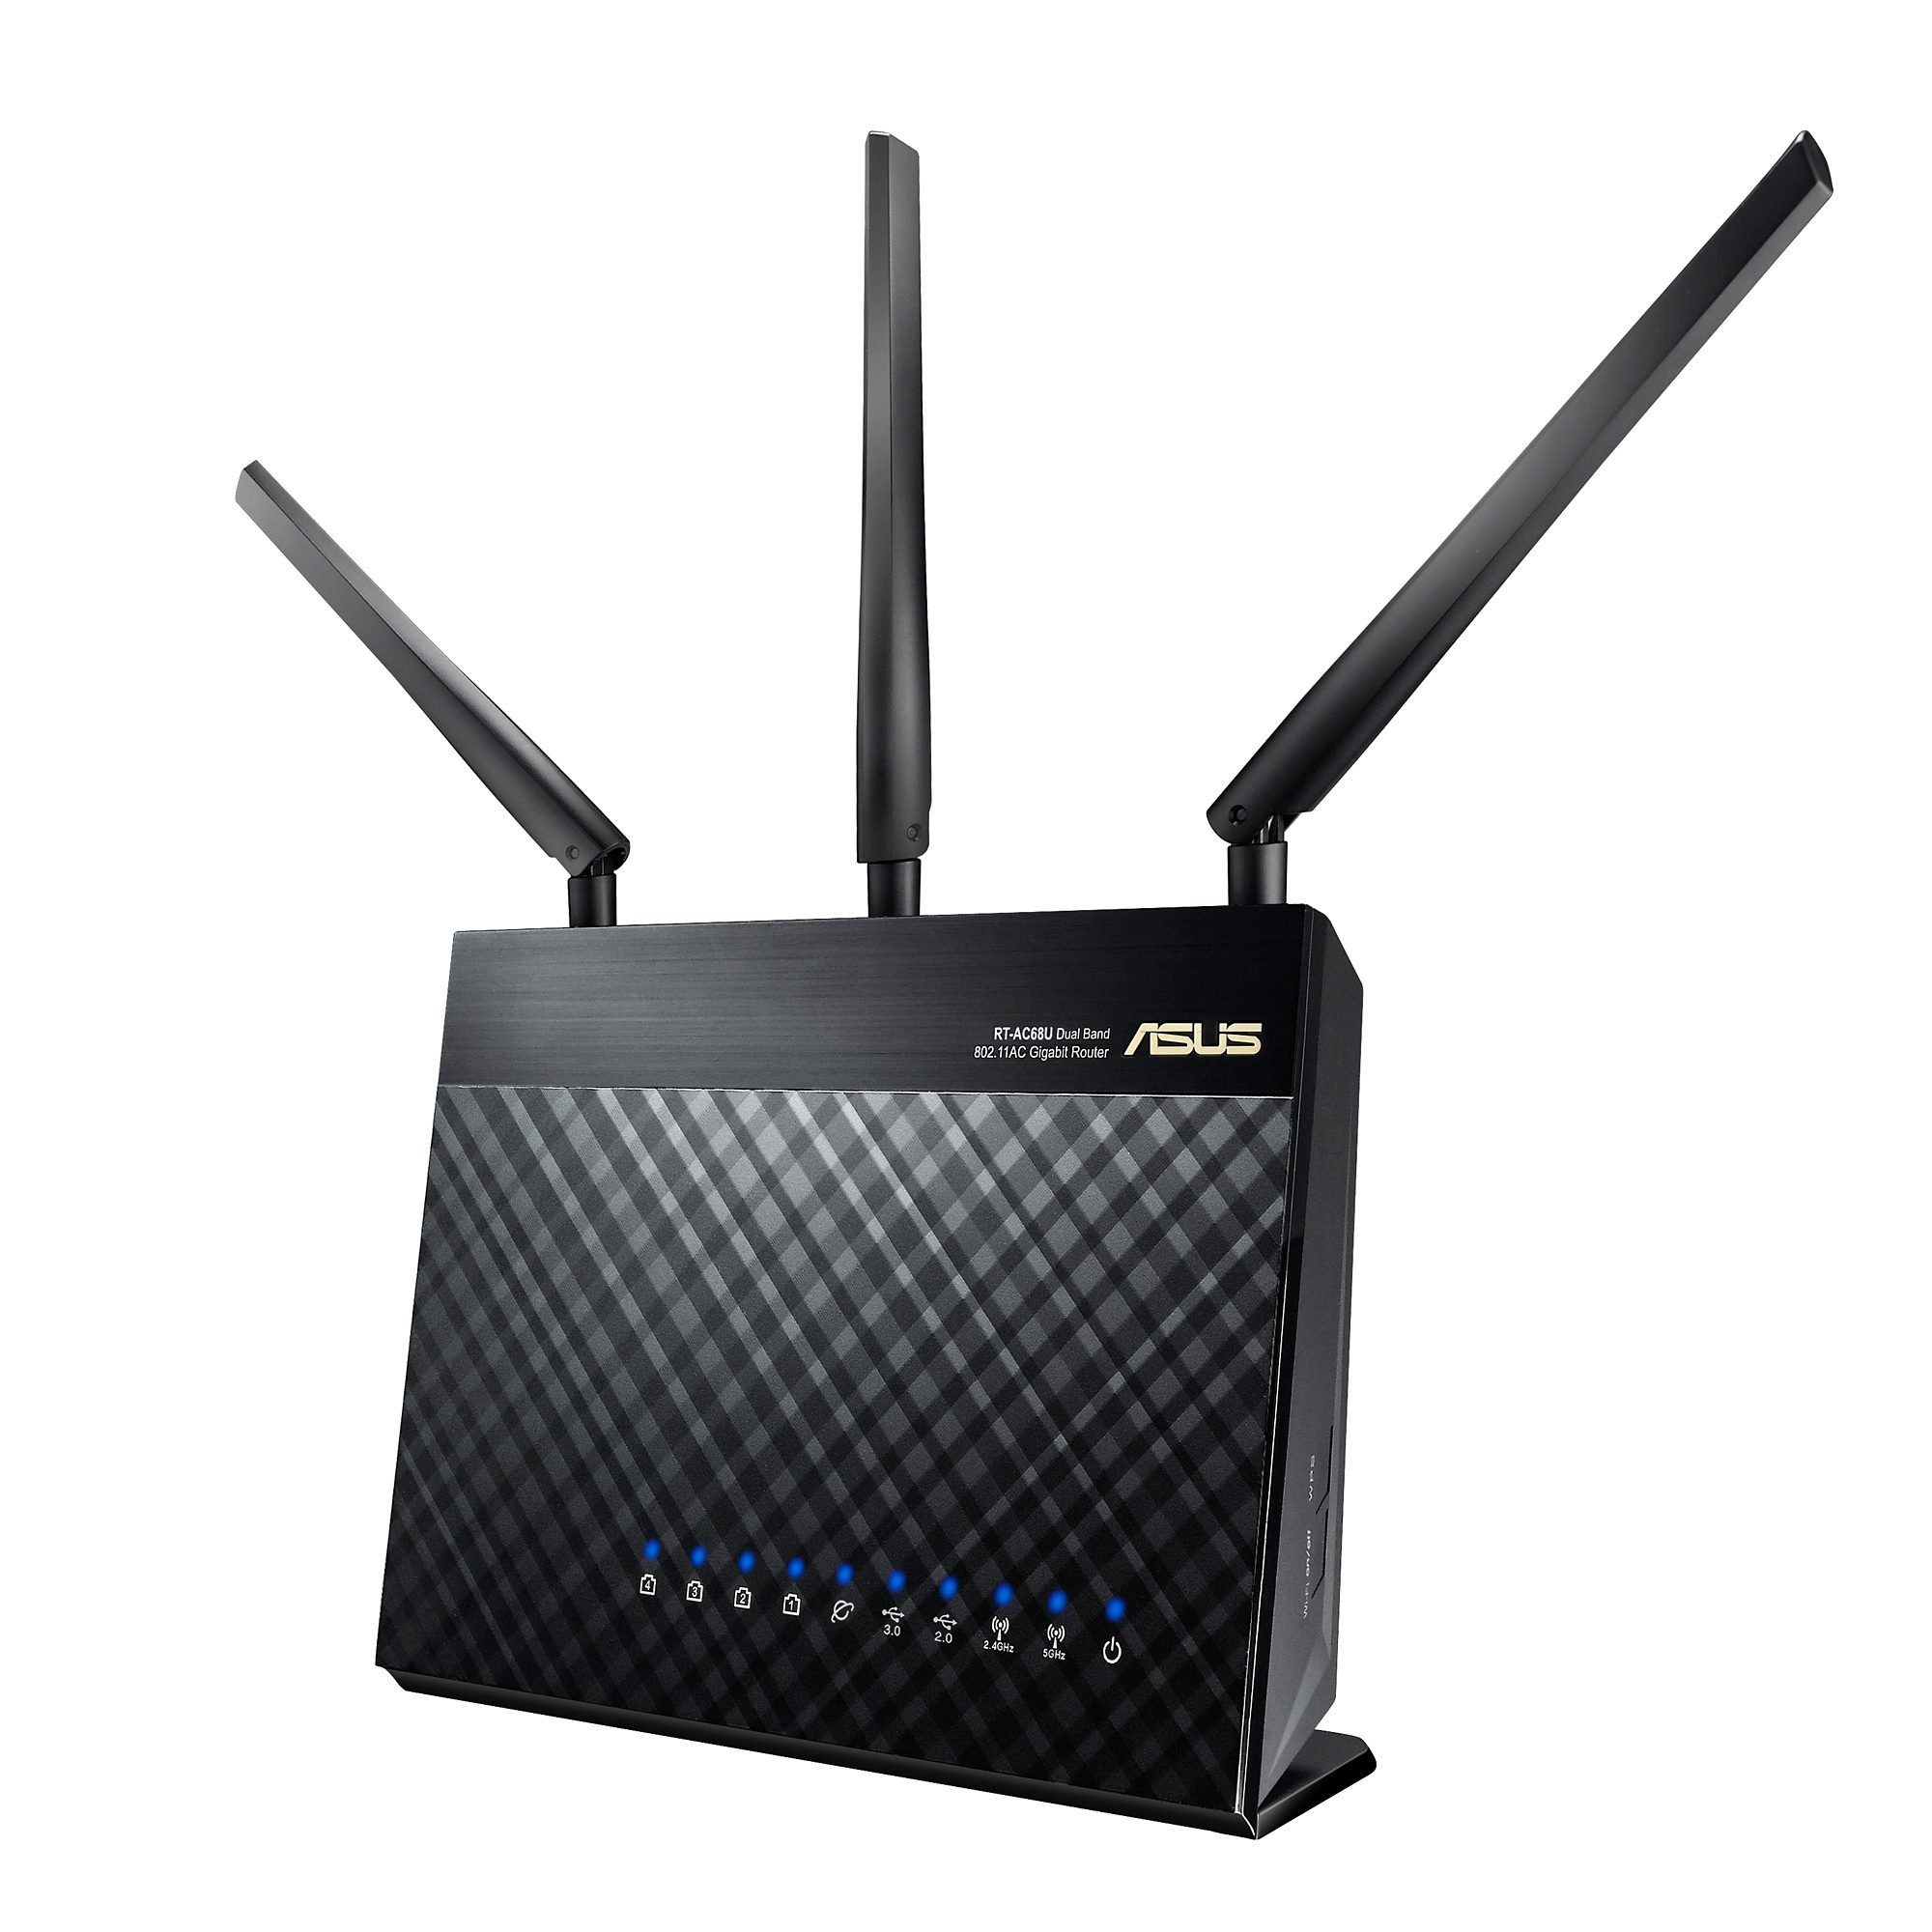 ASUS RT-AC68U AC1900 Gigabit WLAN Router